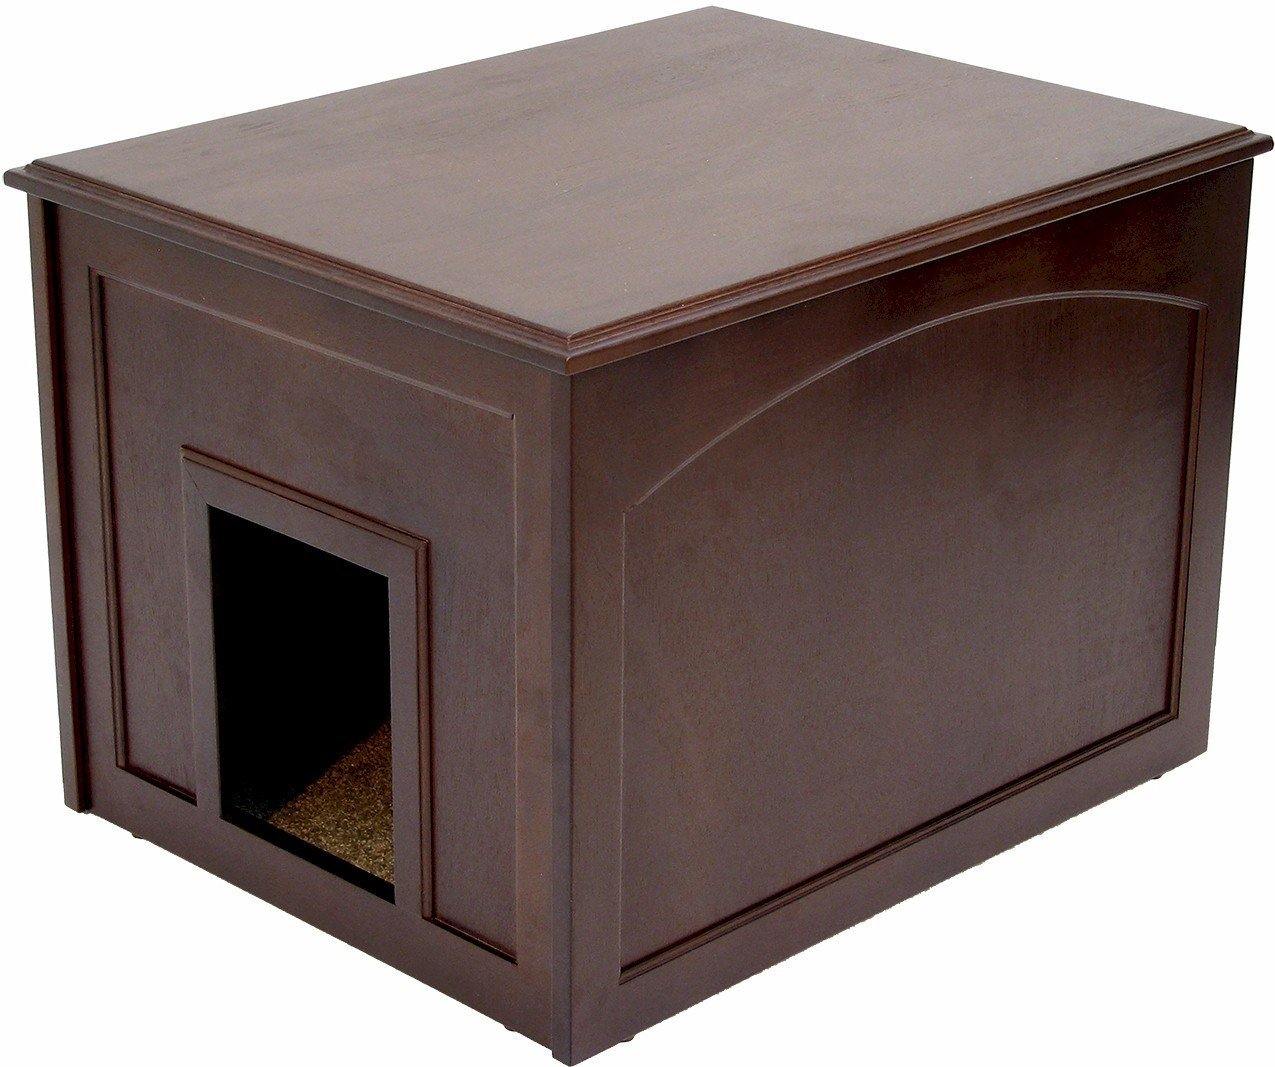 Espresso Crown Pet Products Cat Litter Cabinet, Espresso